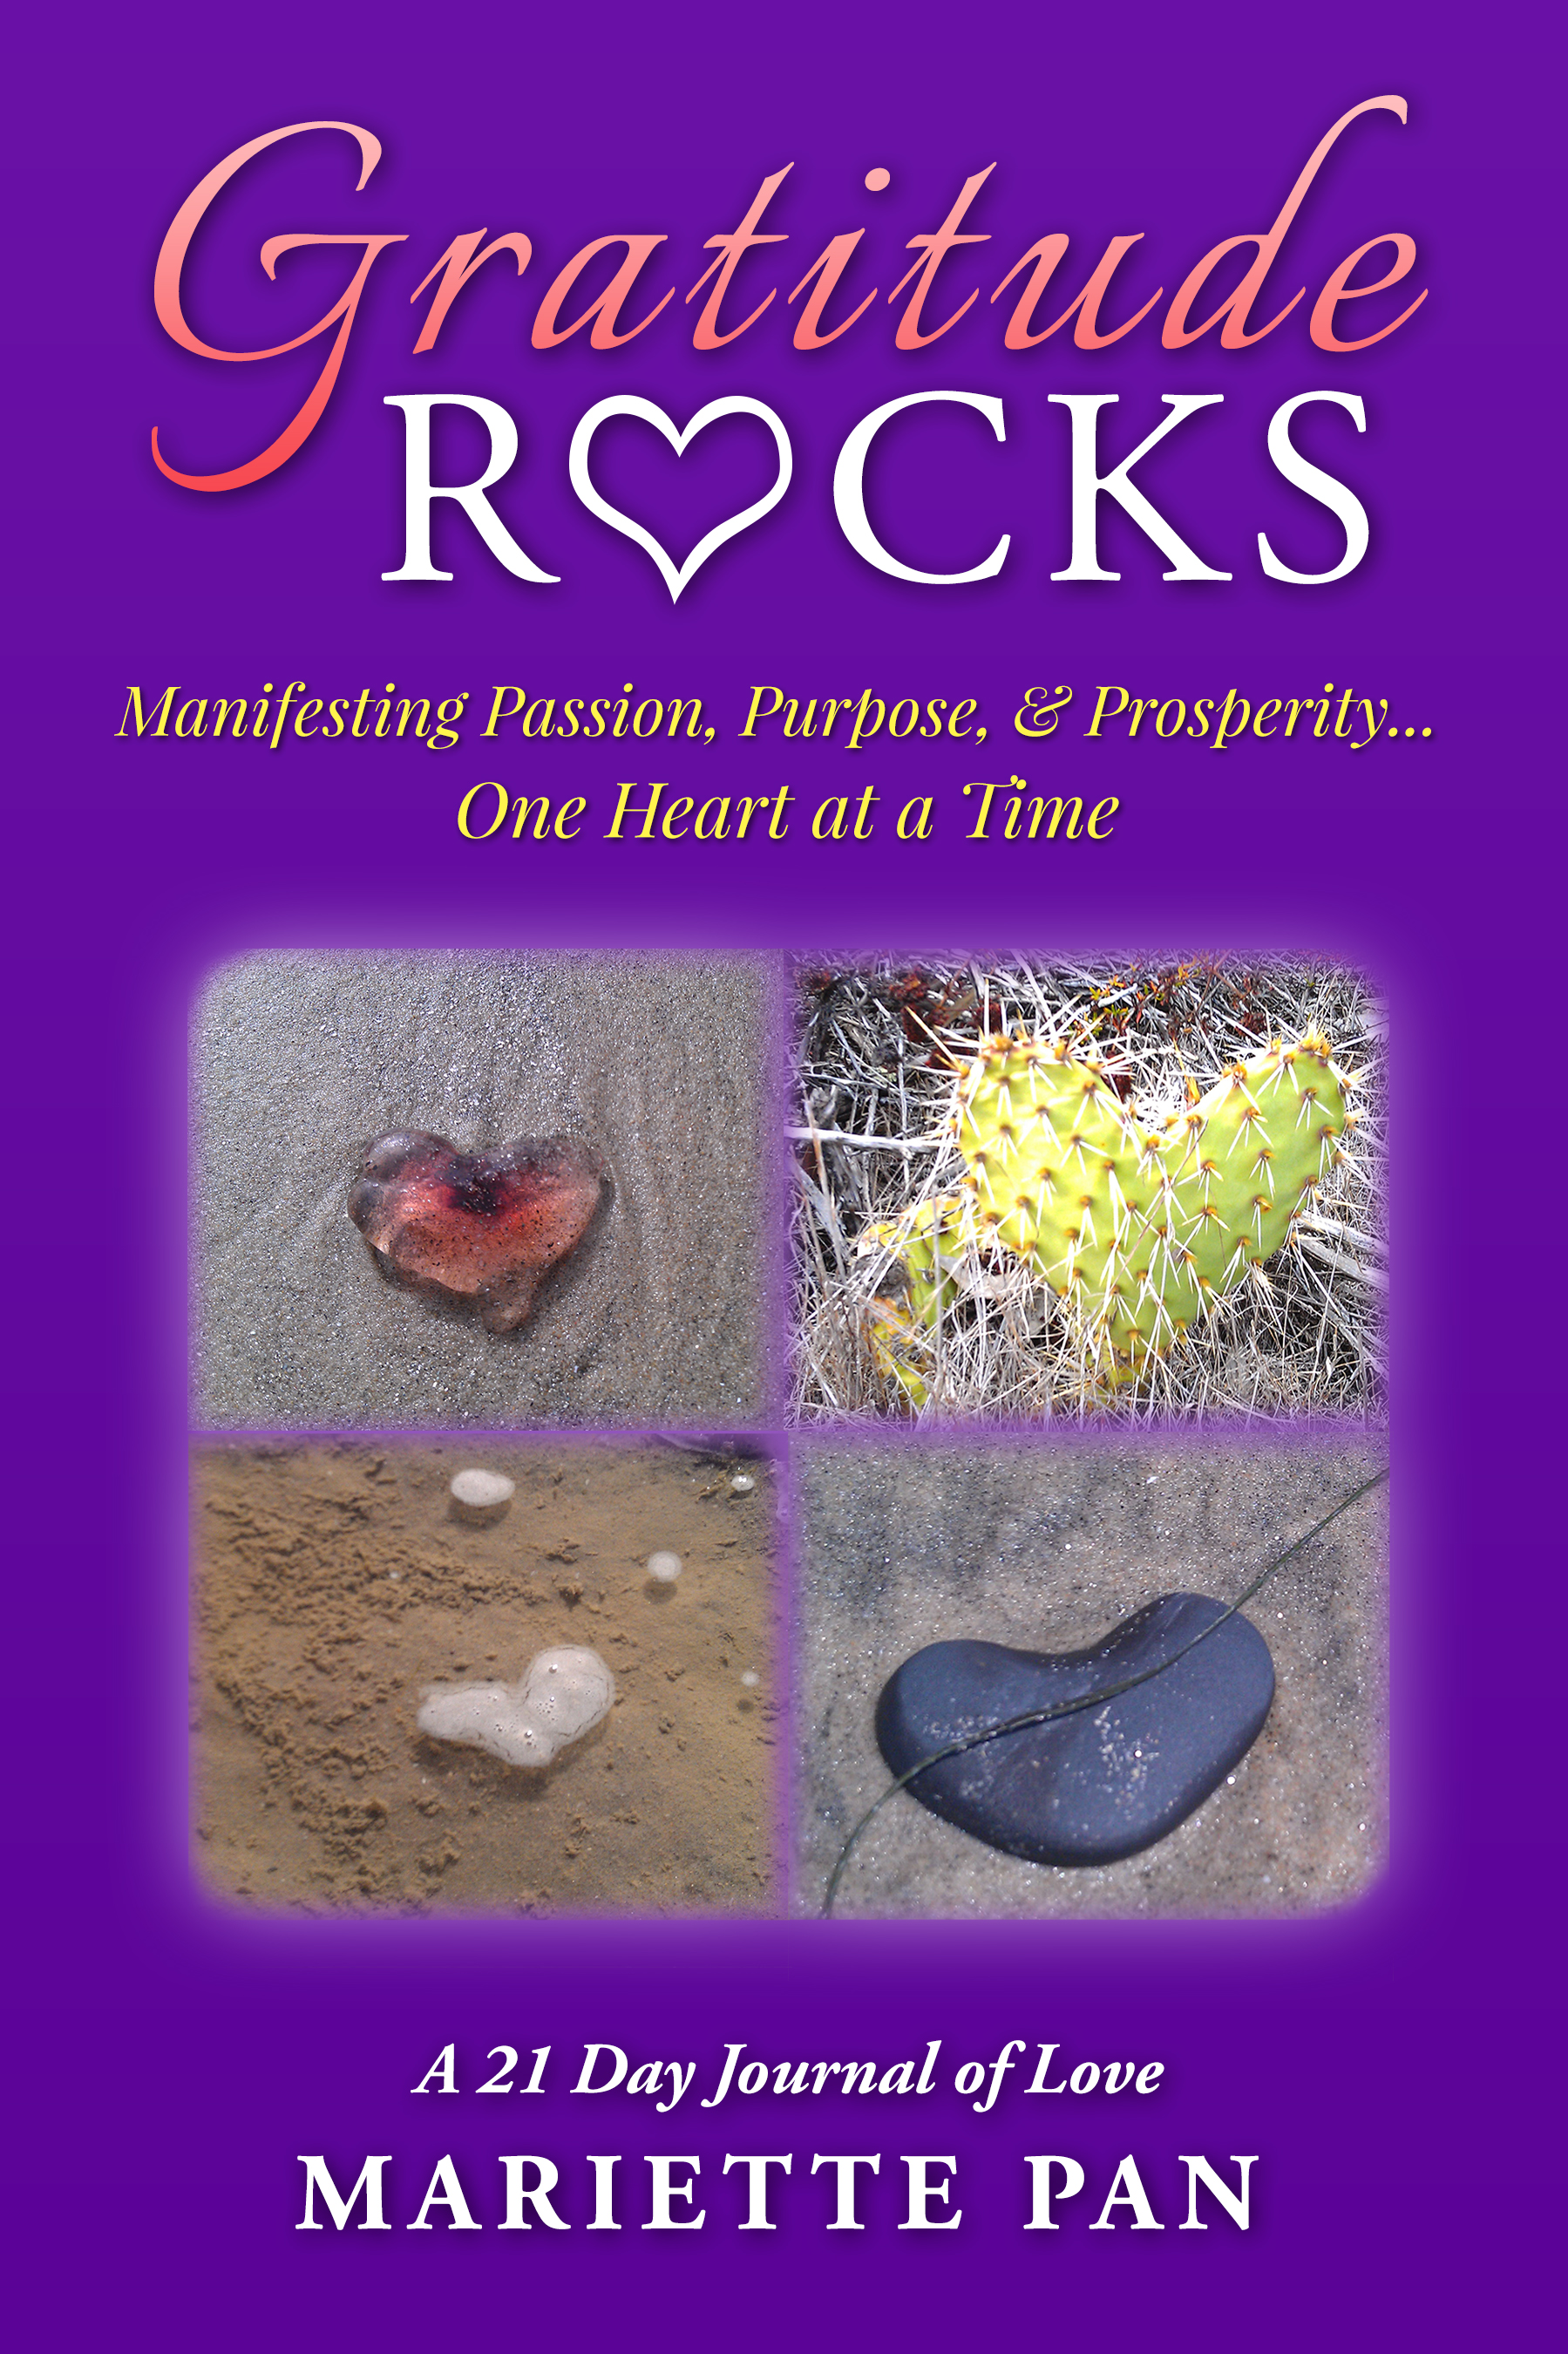 Gratitude Rocks: Manifest Passion, Purpose, & Prosperity